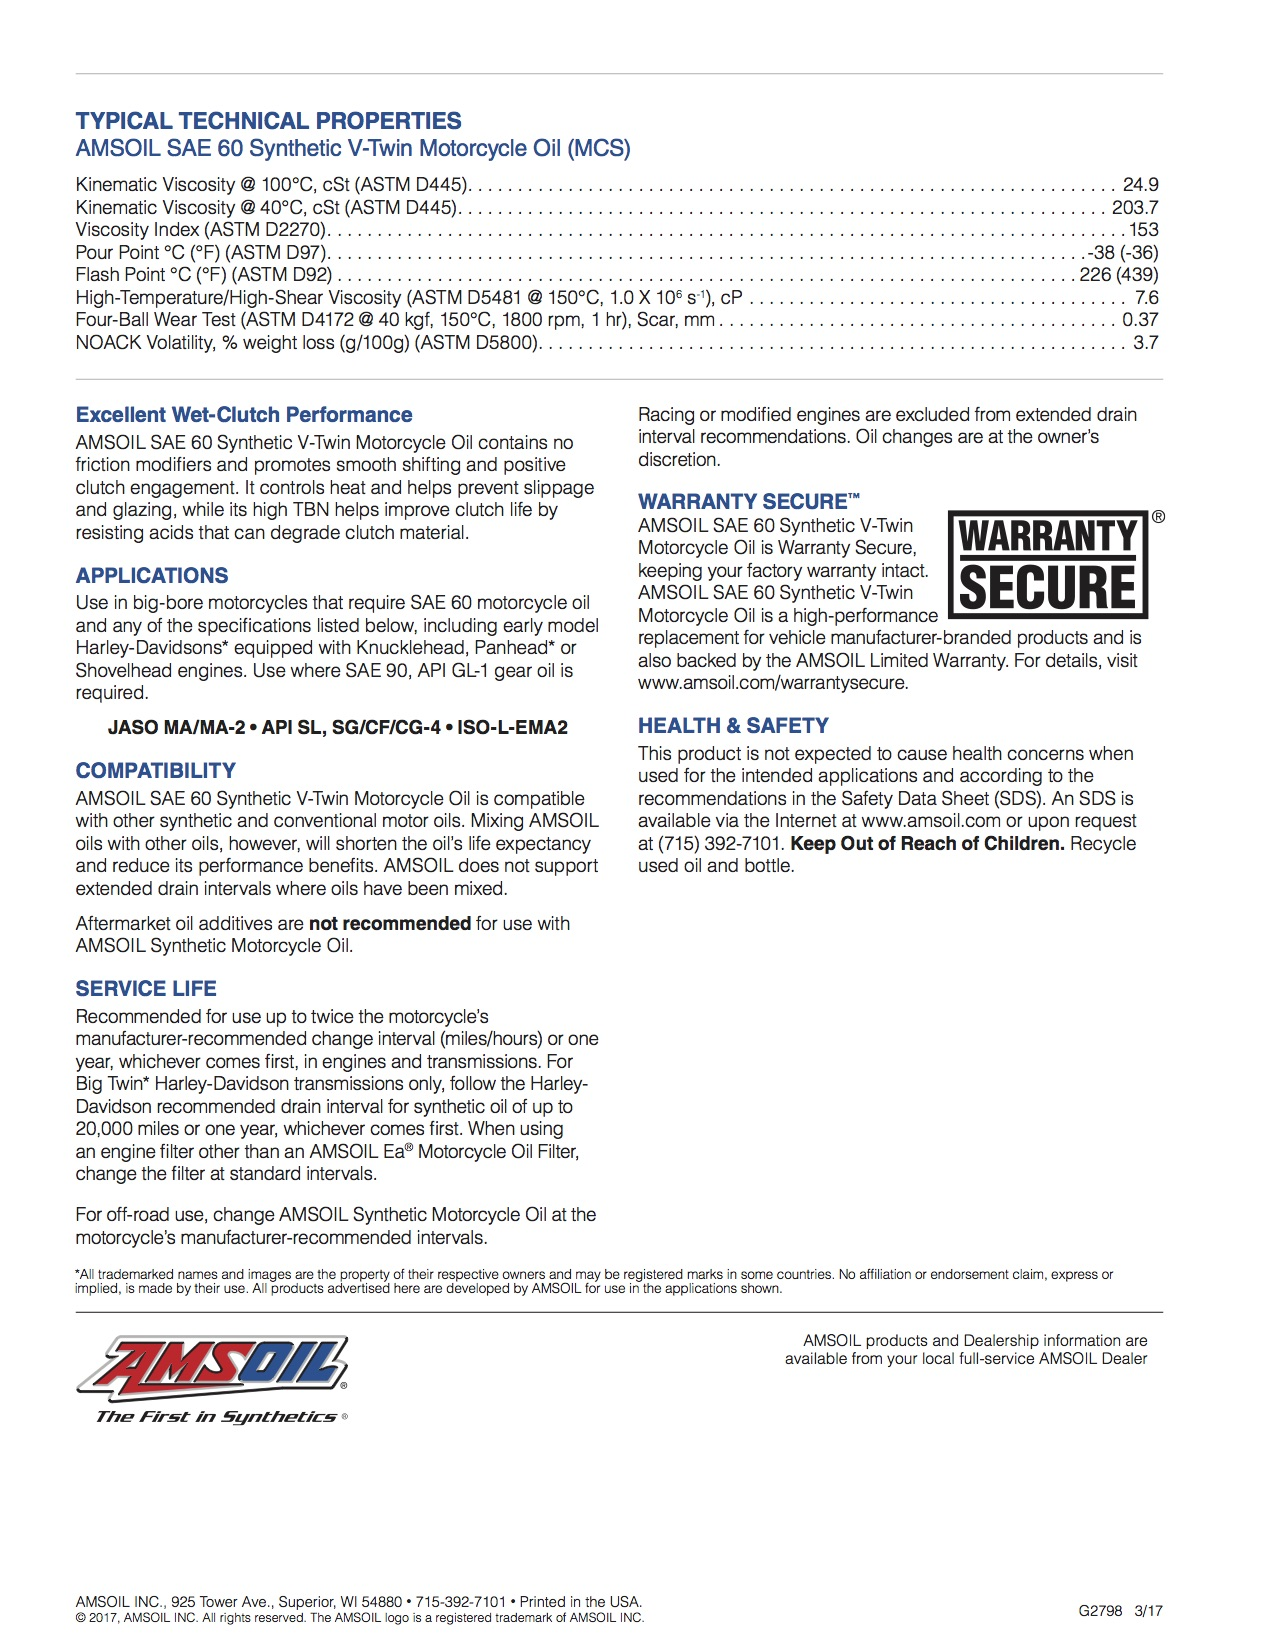 AMSOIL SAE 60 Synthetic V-Twin Motorcycle Oil (MCS)